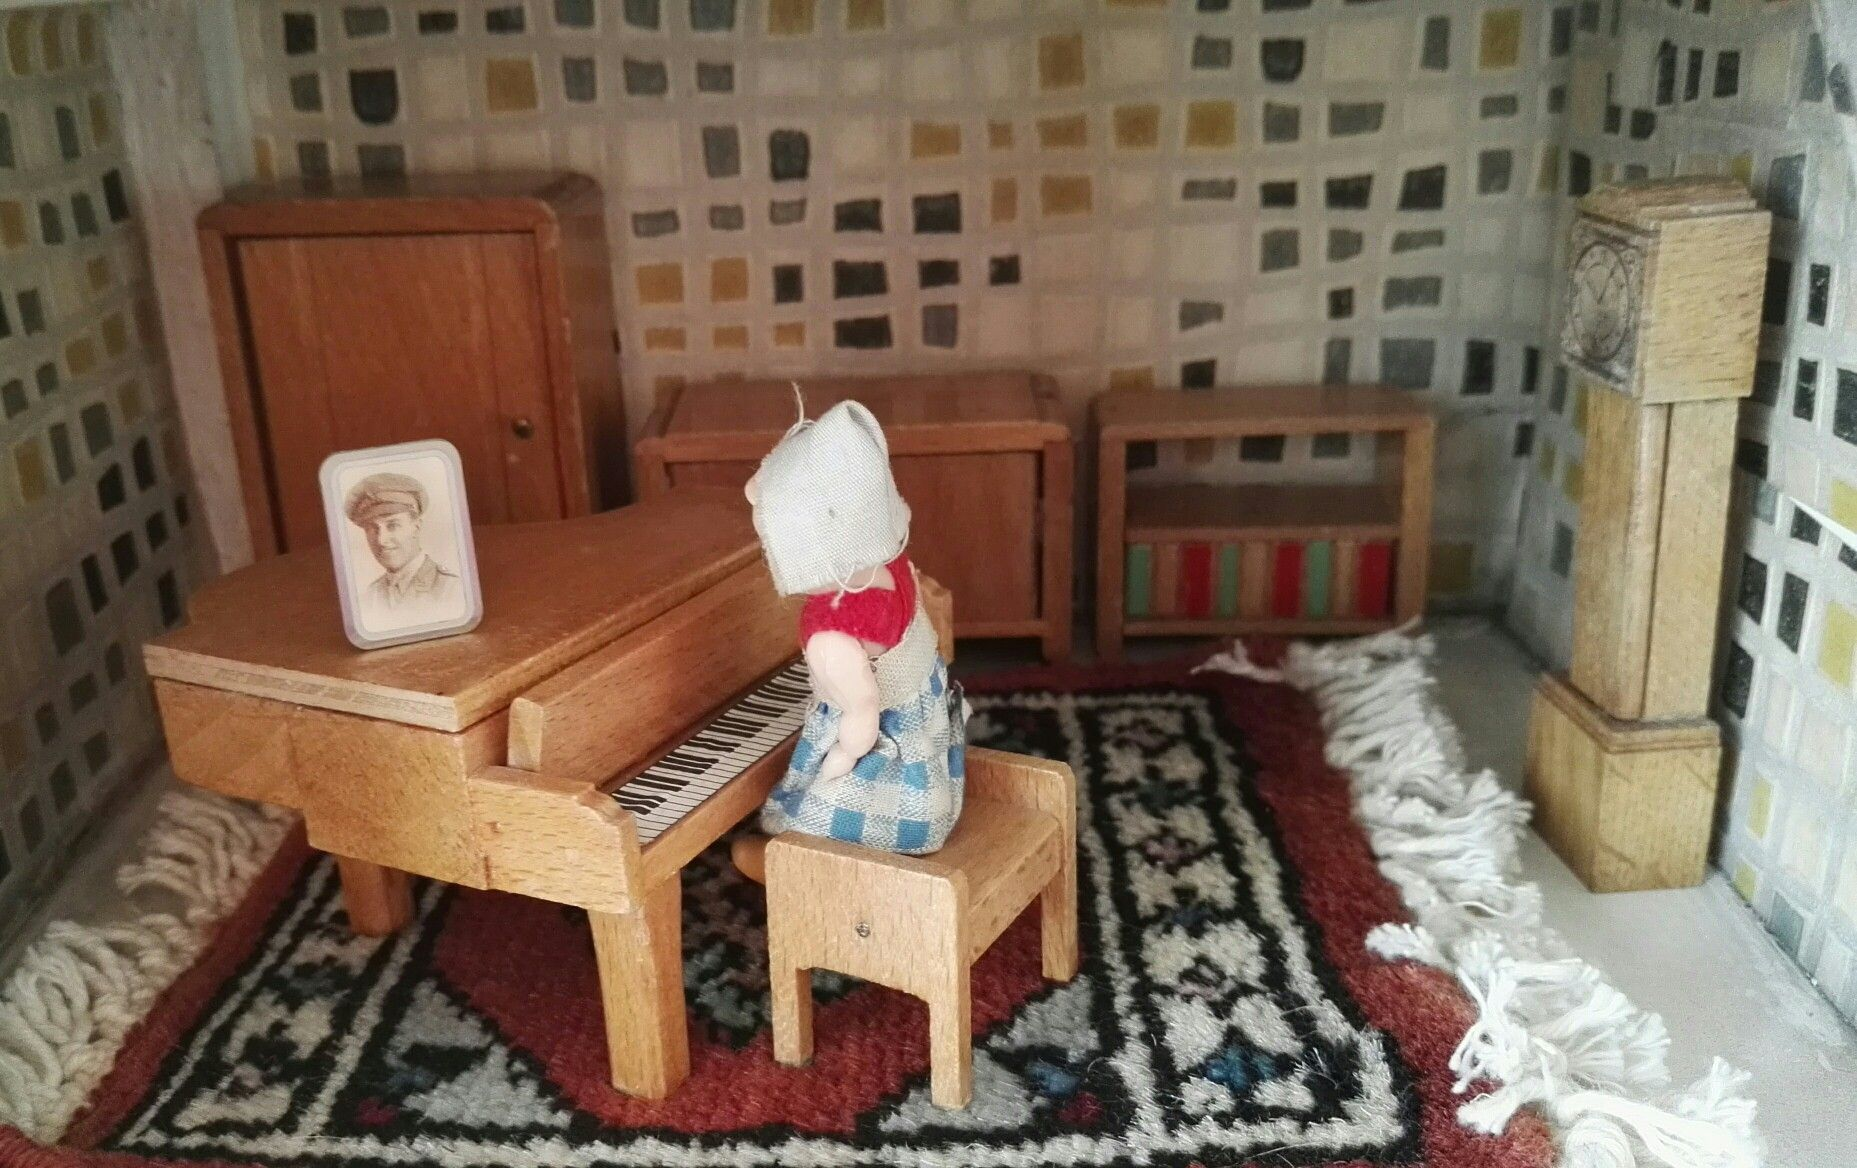 My doll's house is a GeeBee DH9 made between 1964 and 1966. My doll's house living room furniture is by A E Twiggs.